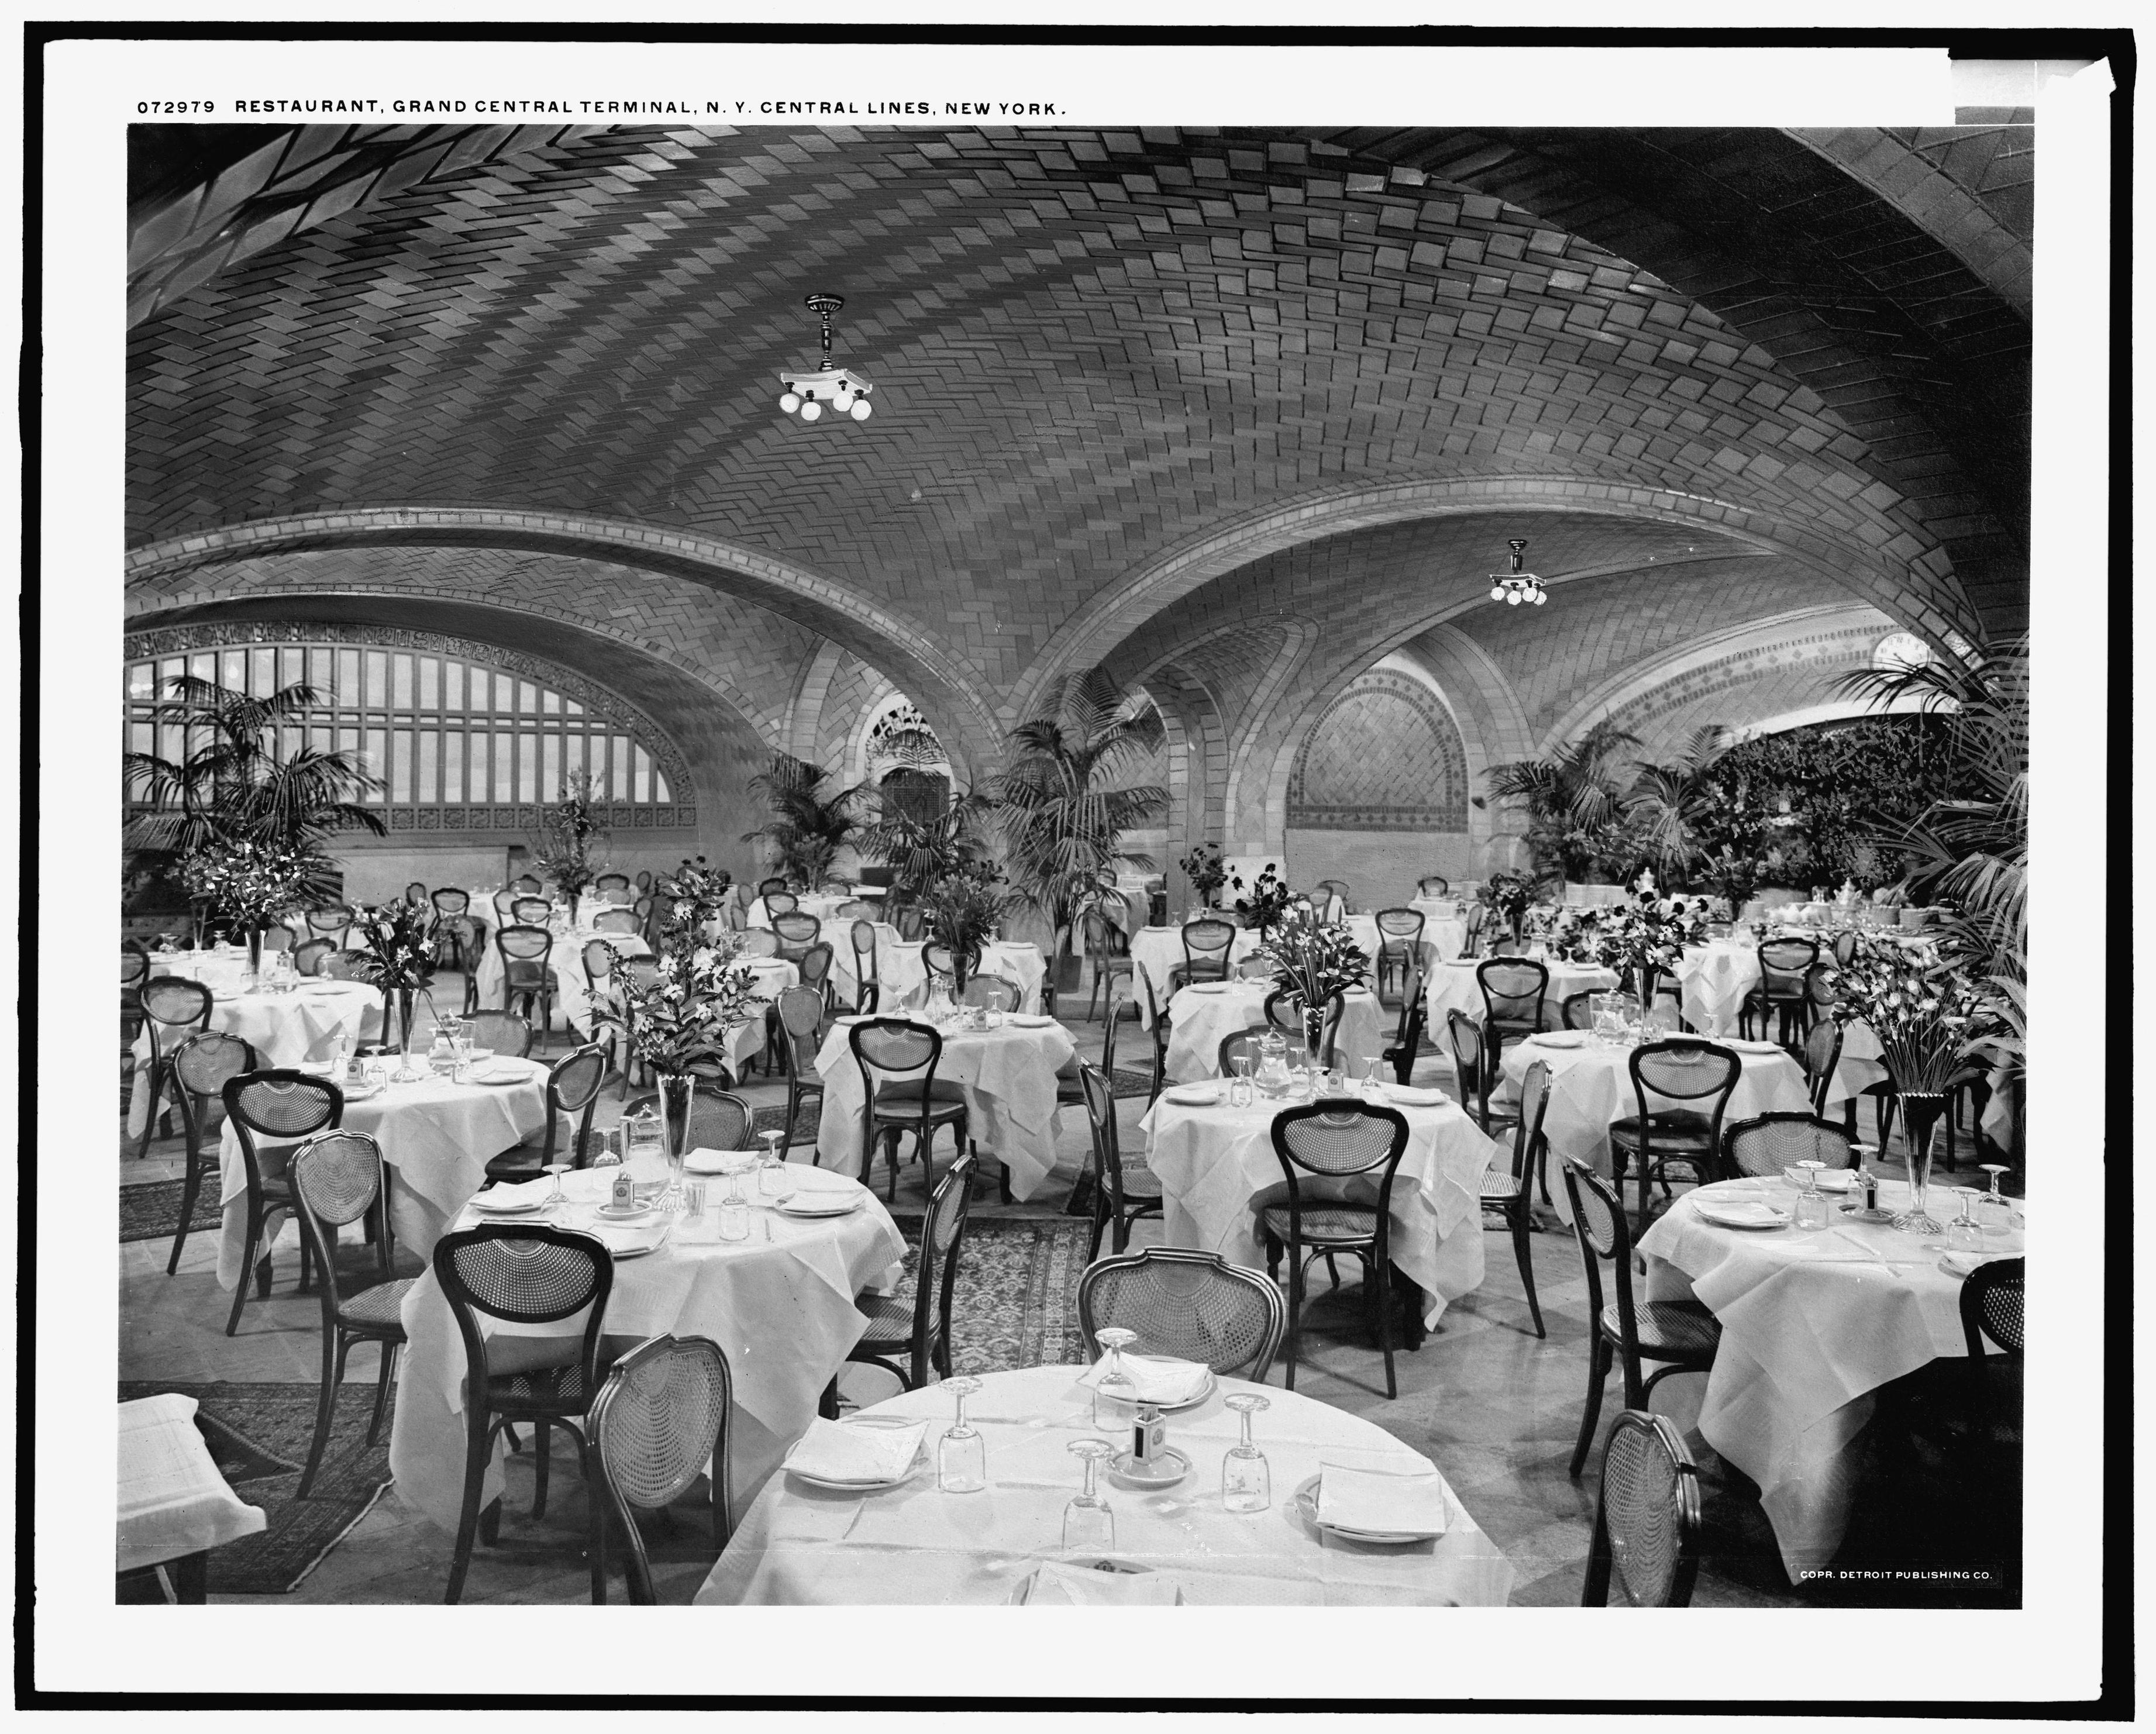 Vintage Photograph Of The Oyster Bar Restaurant At Grand Central Terminal Circa 1915